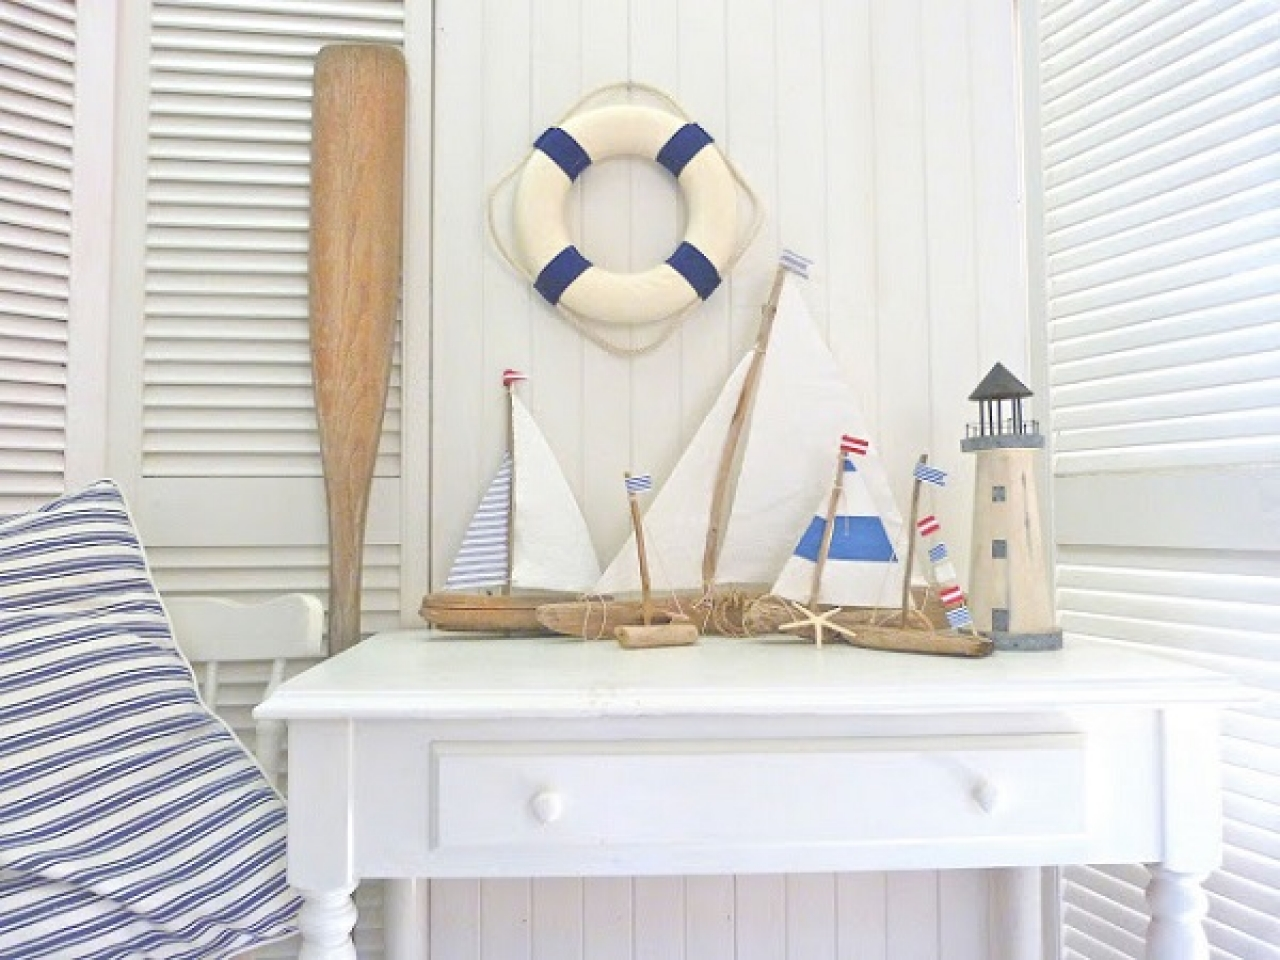 nautical decor ideas for bedroom bathroom walls